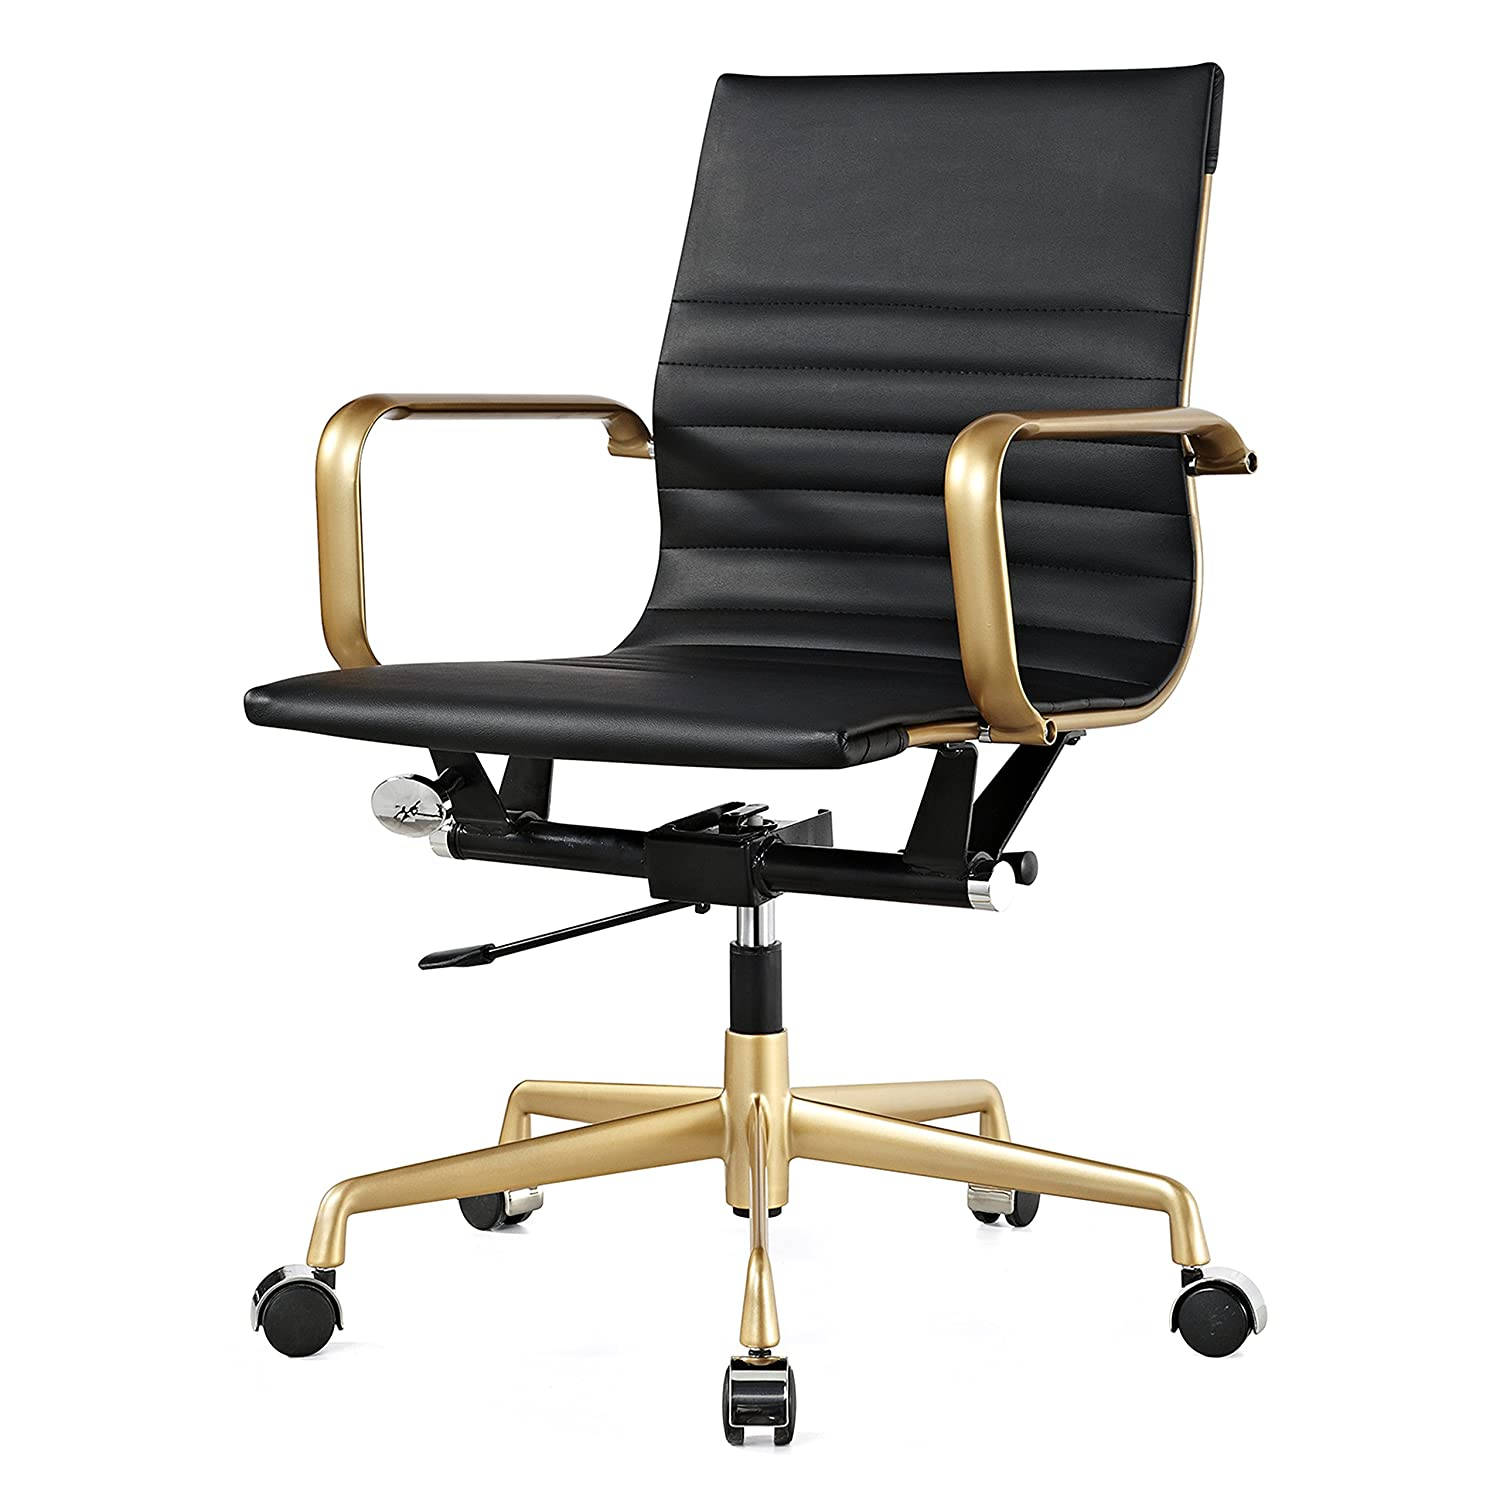 Meelano M348 Vegan Leather Office Chair, Gold/Black 348-GD-BLK